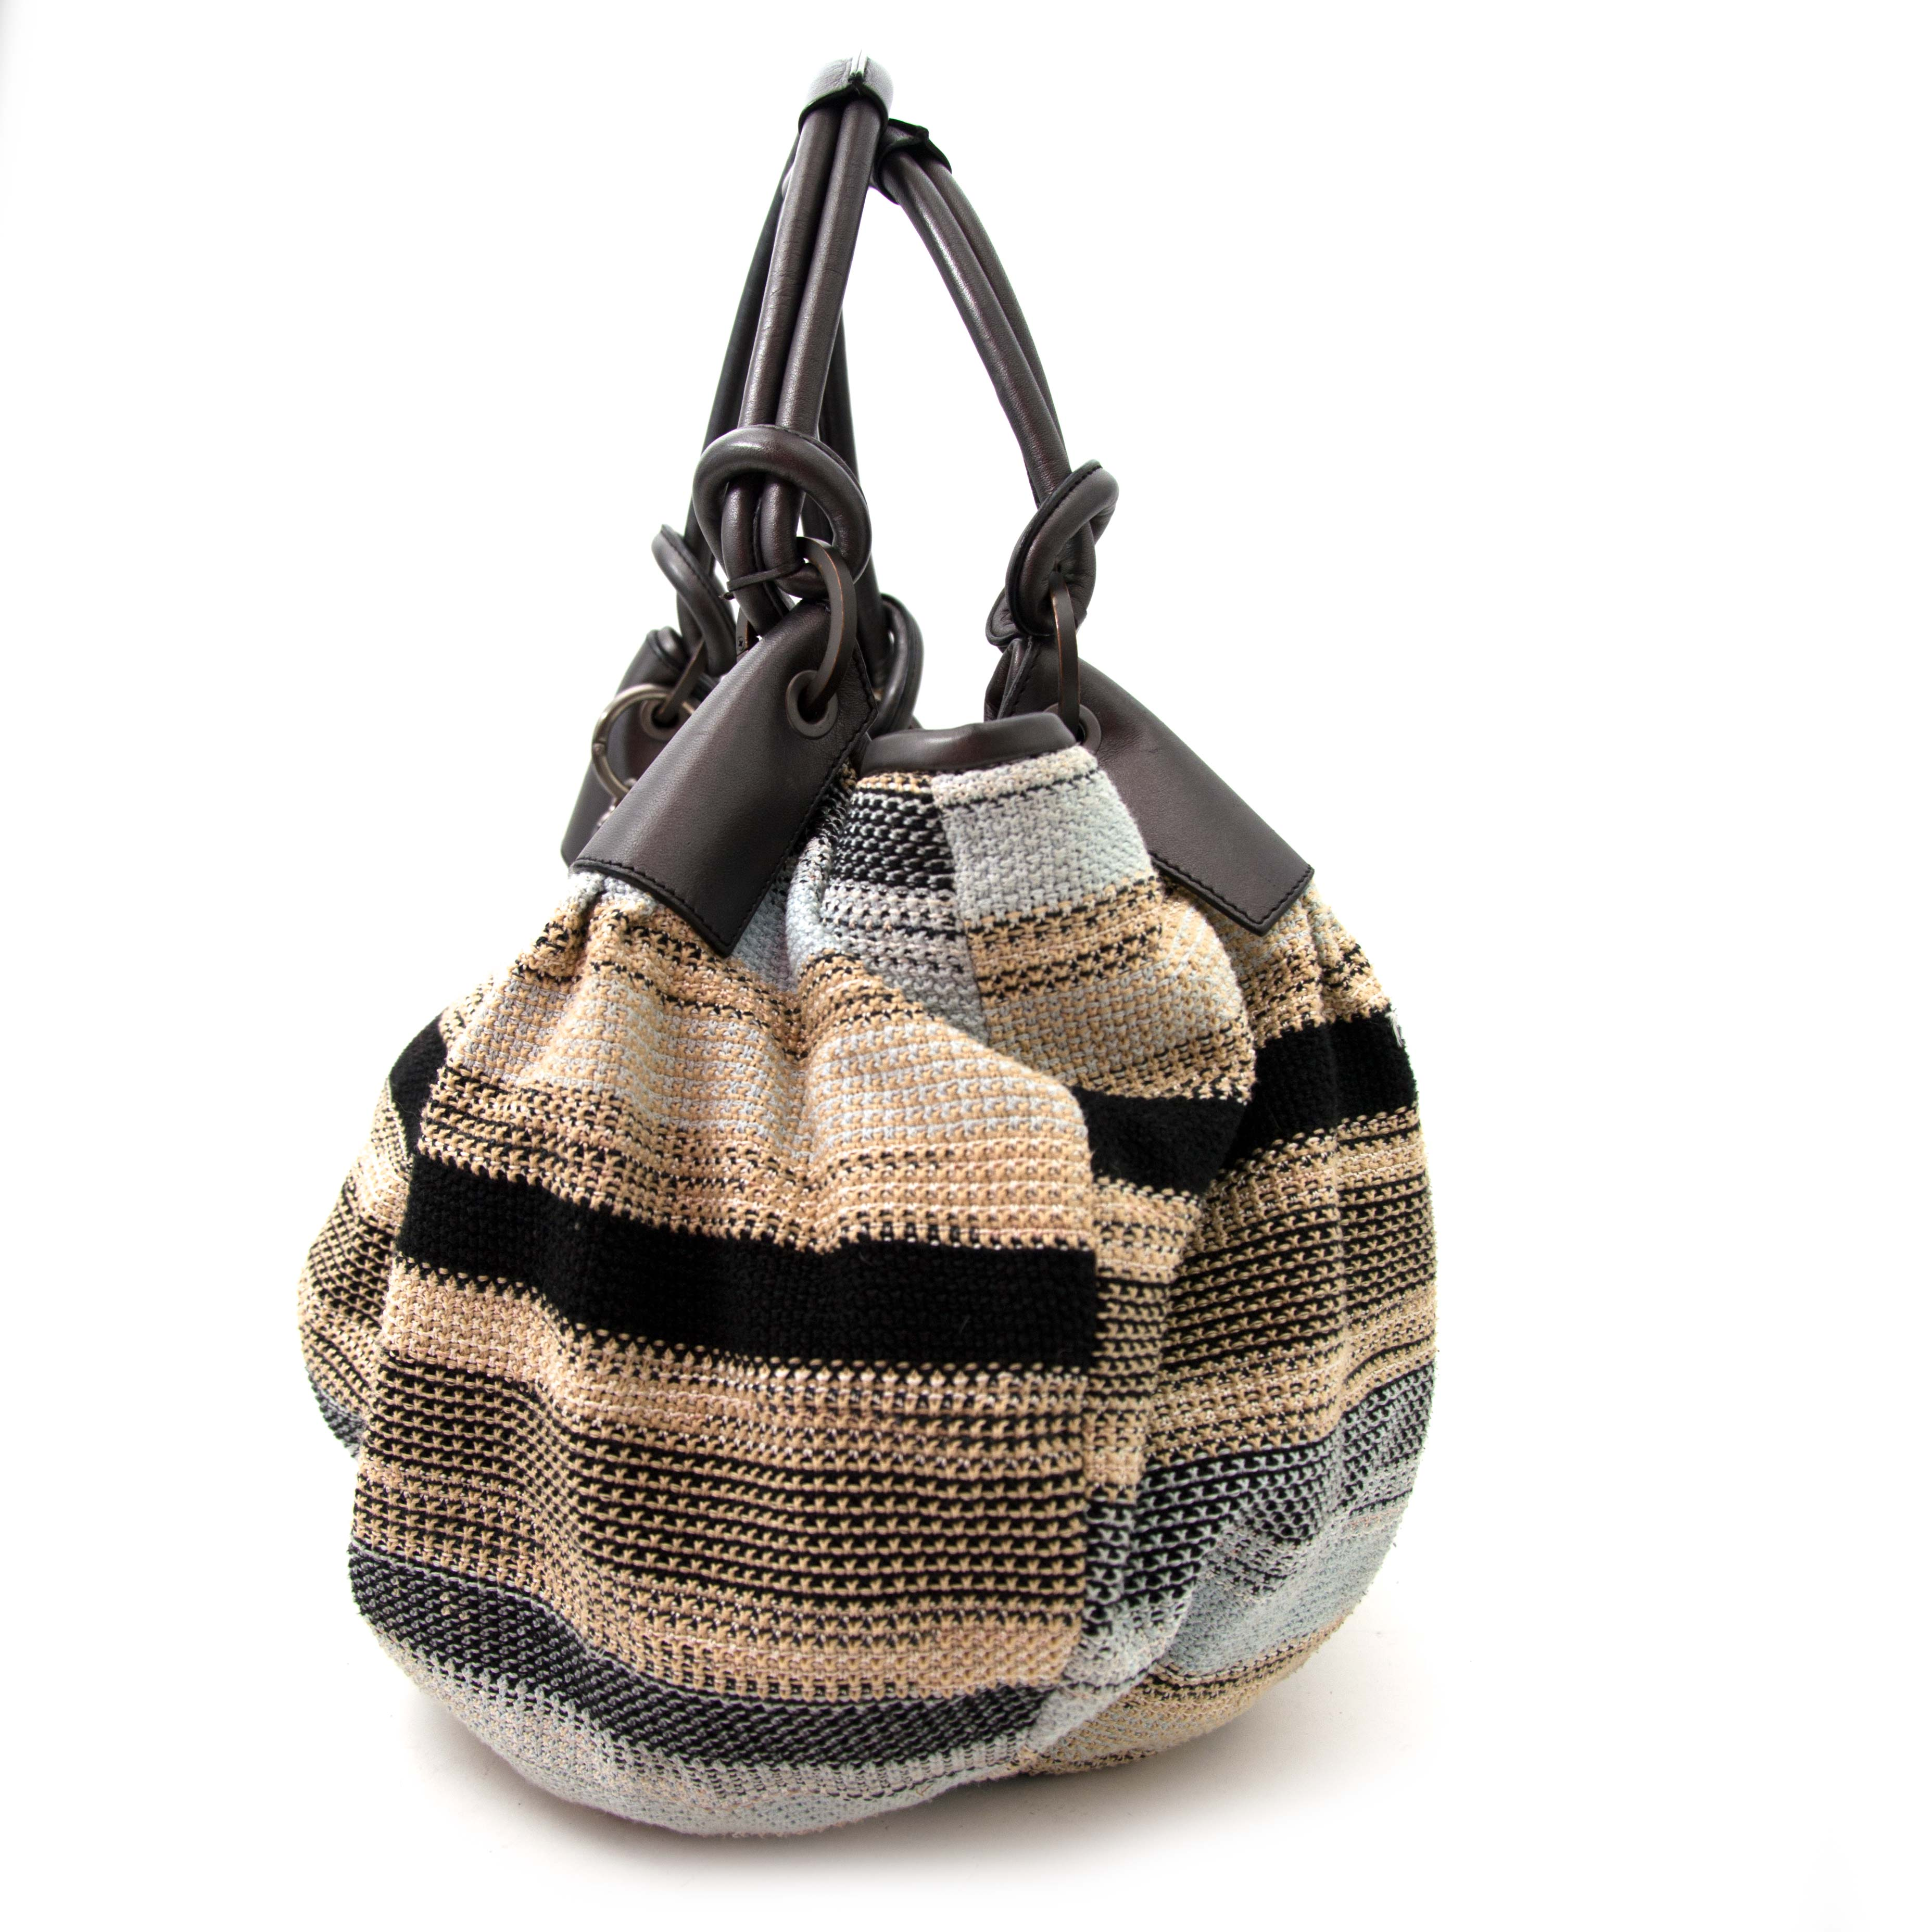 looking for a secondhand Missoni Fabric Bag